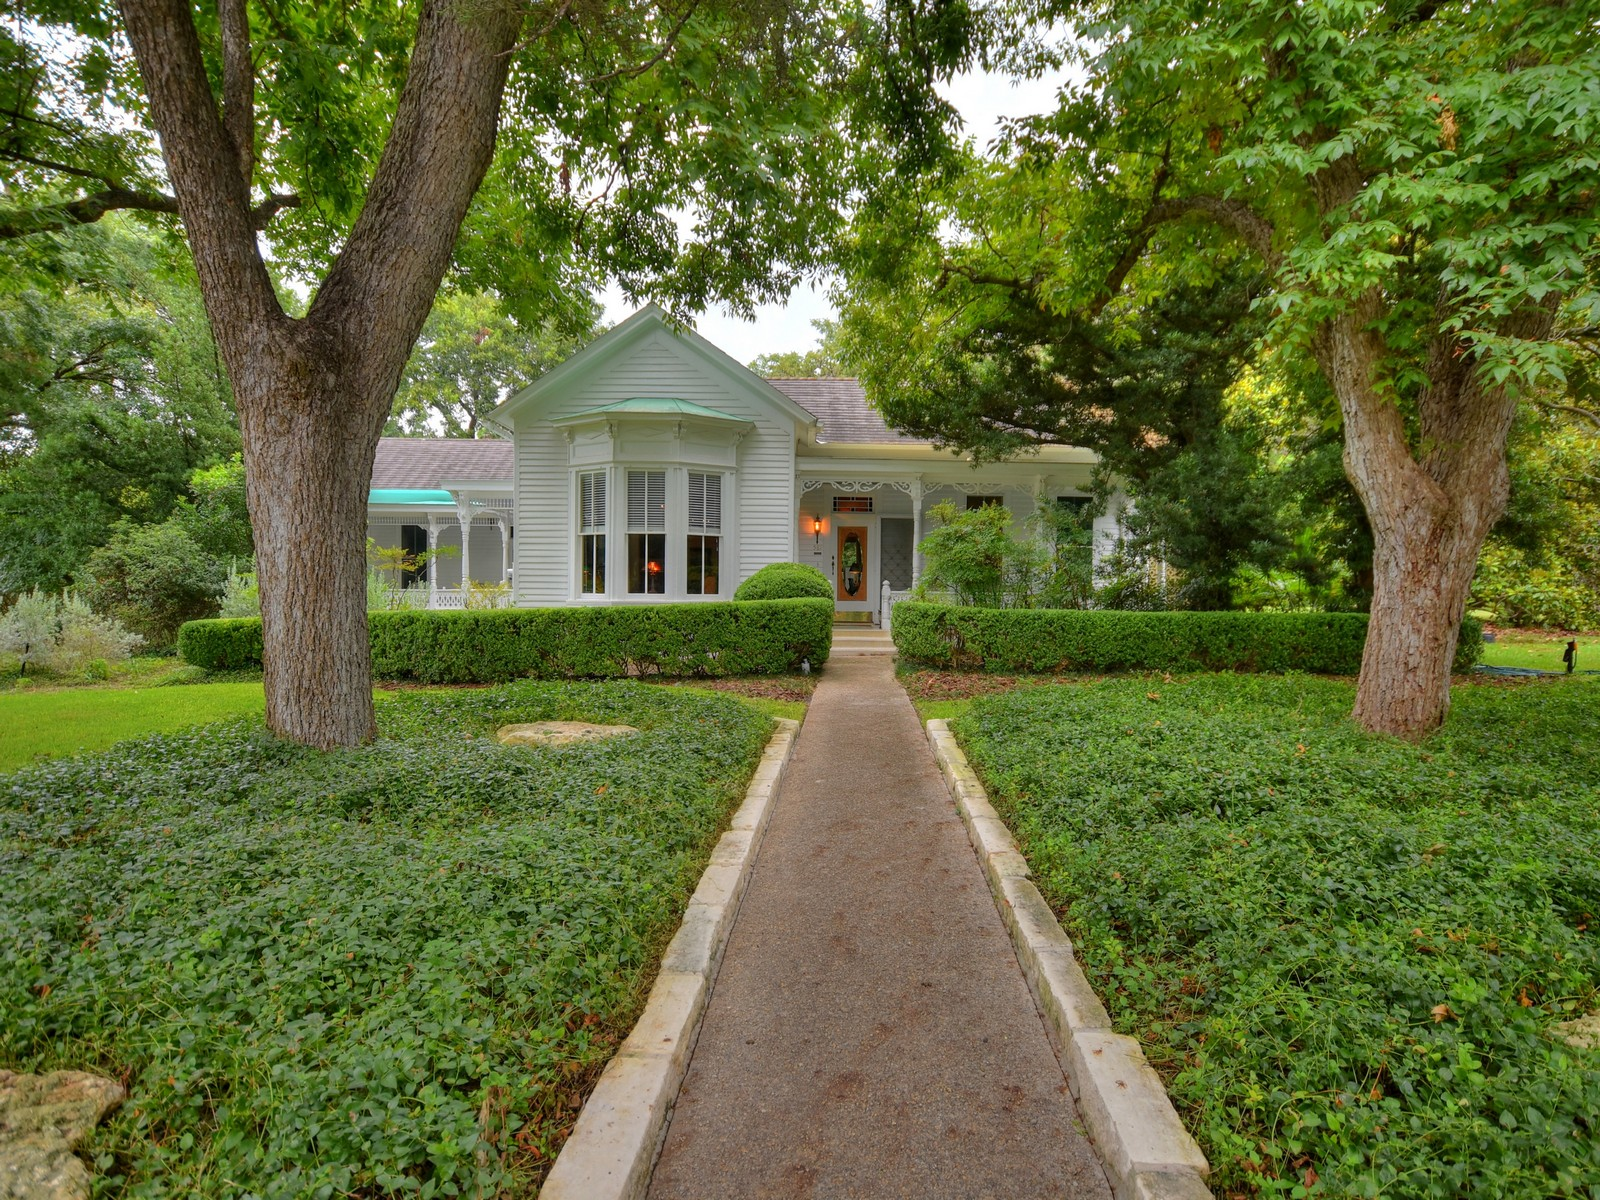 Casa Unifamiliar por un Venta en Historic Jewel Built in 1863 581 W Coll New Braunfels, Texas 78130 Estados Unidos